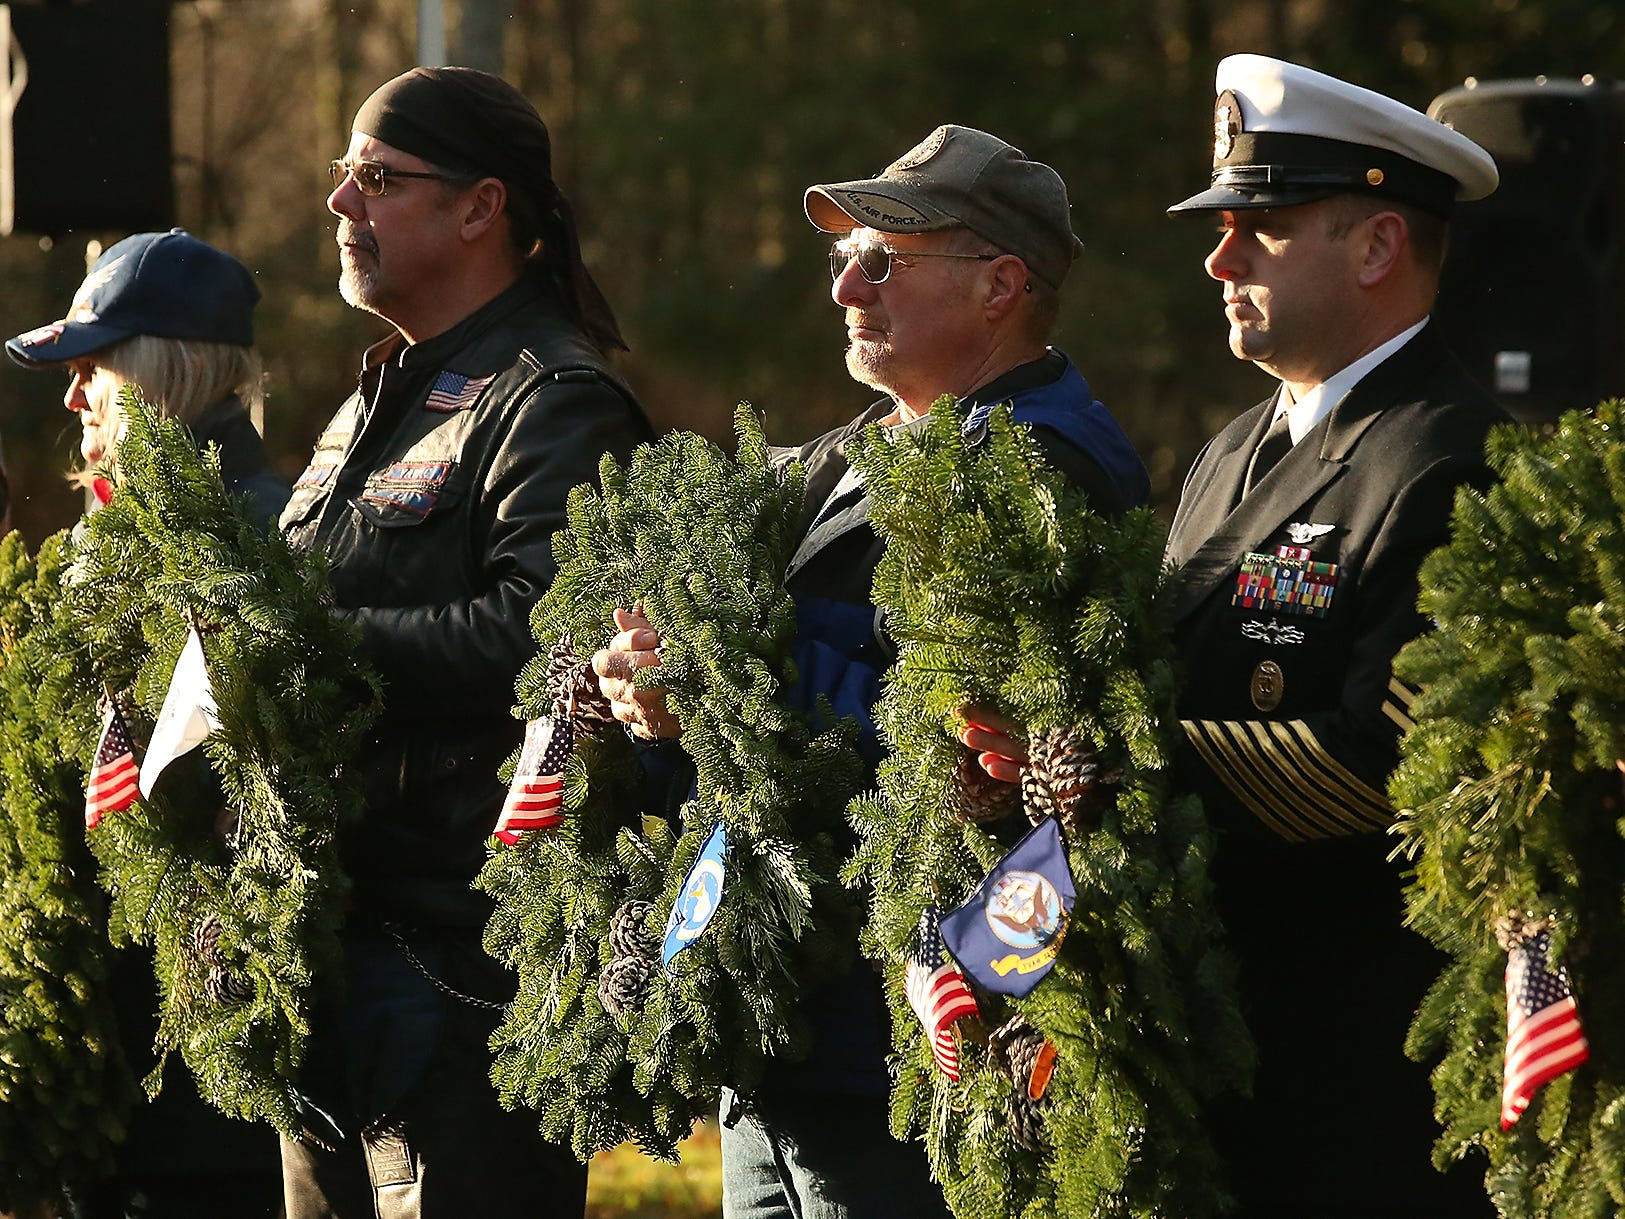 Volunteers placed 2143 wreaths during the Wreaths Across America event at the Washington Veterans Home Cemetery in Port Orchard on Saturday, December 15, 2018.